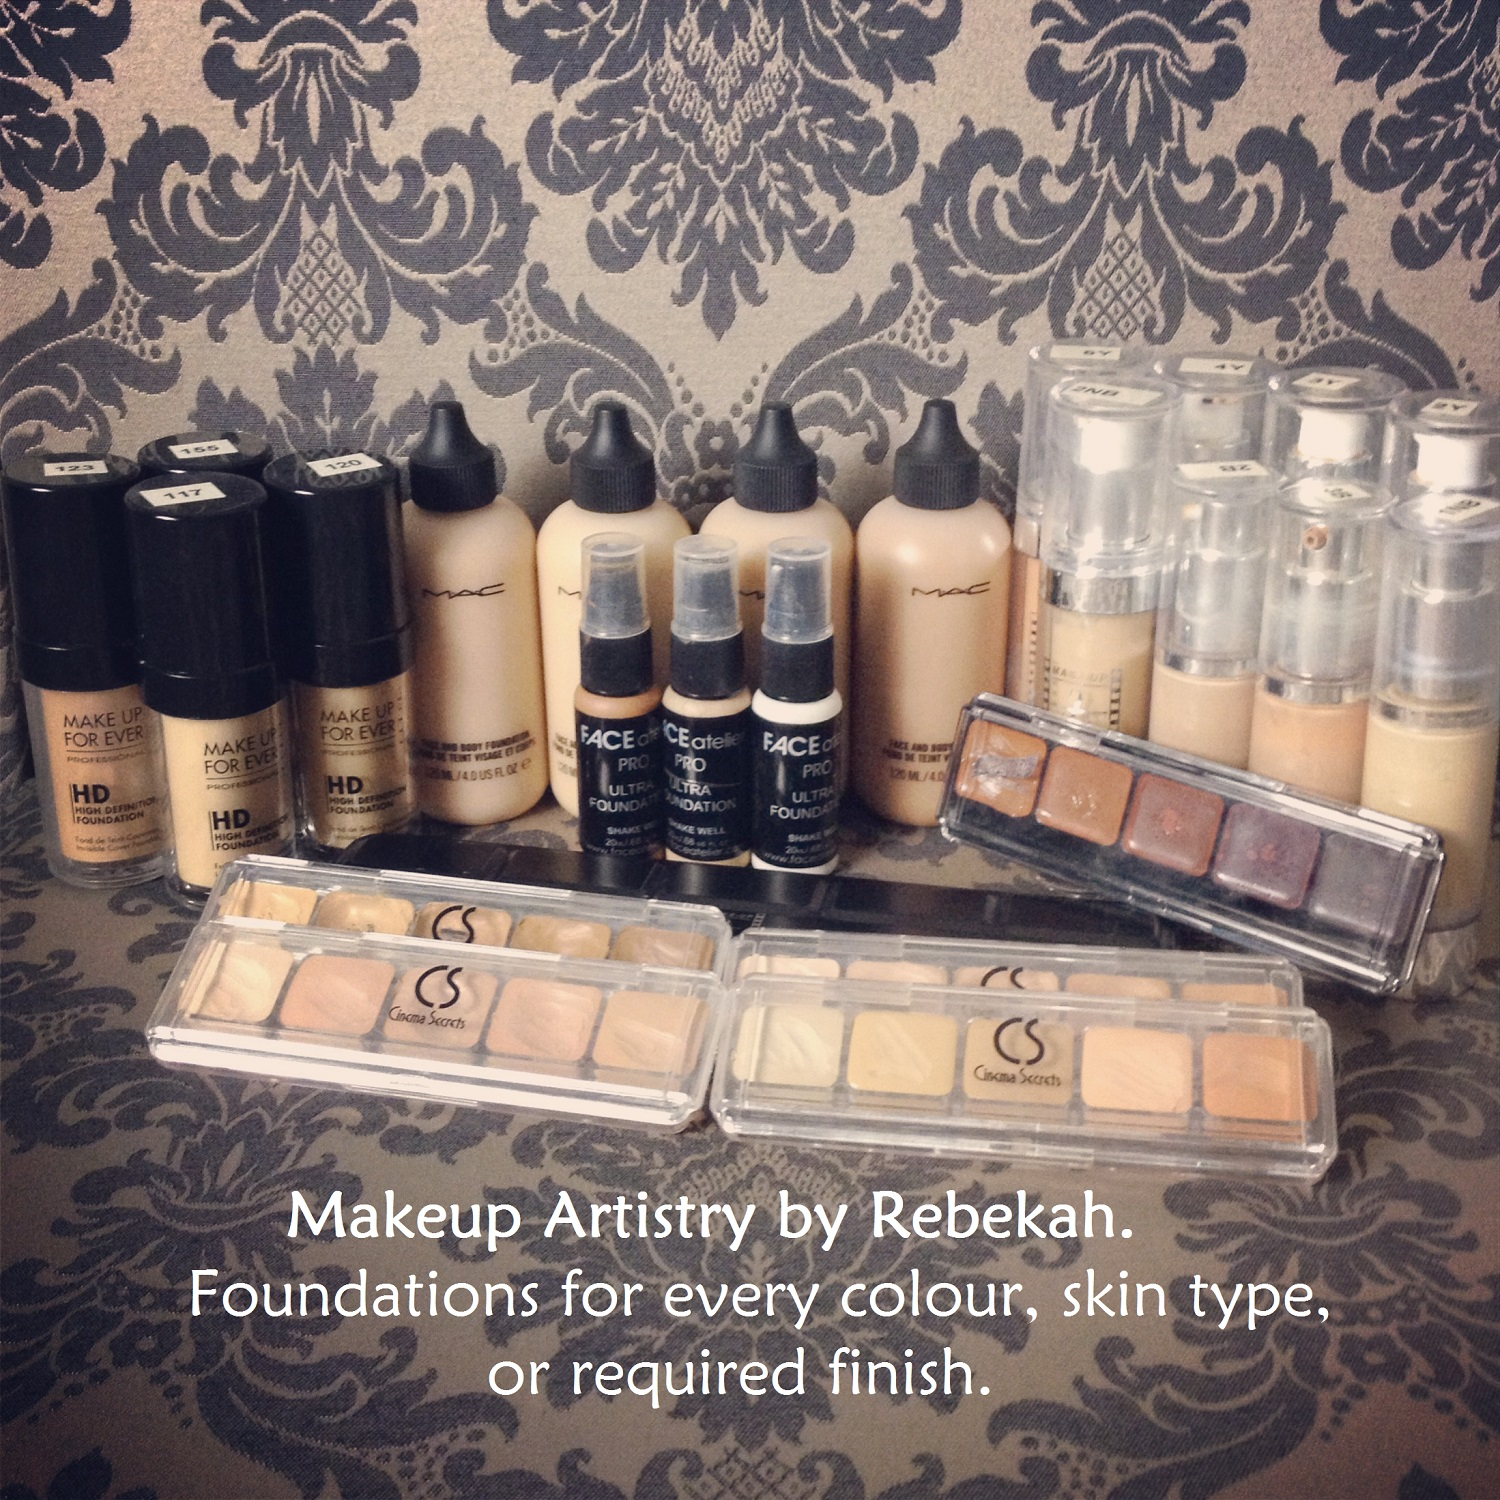 What makeup brands are in my kit? - Makeup Artistry by Rebekah